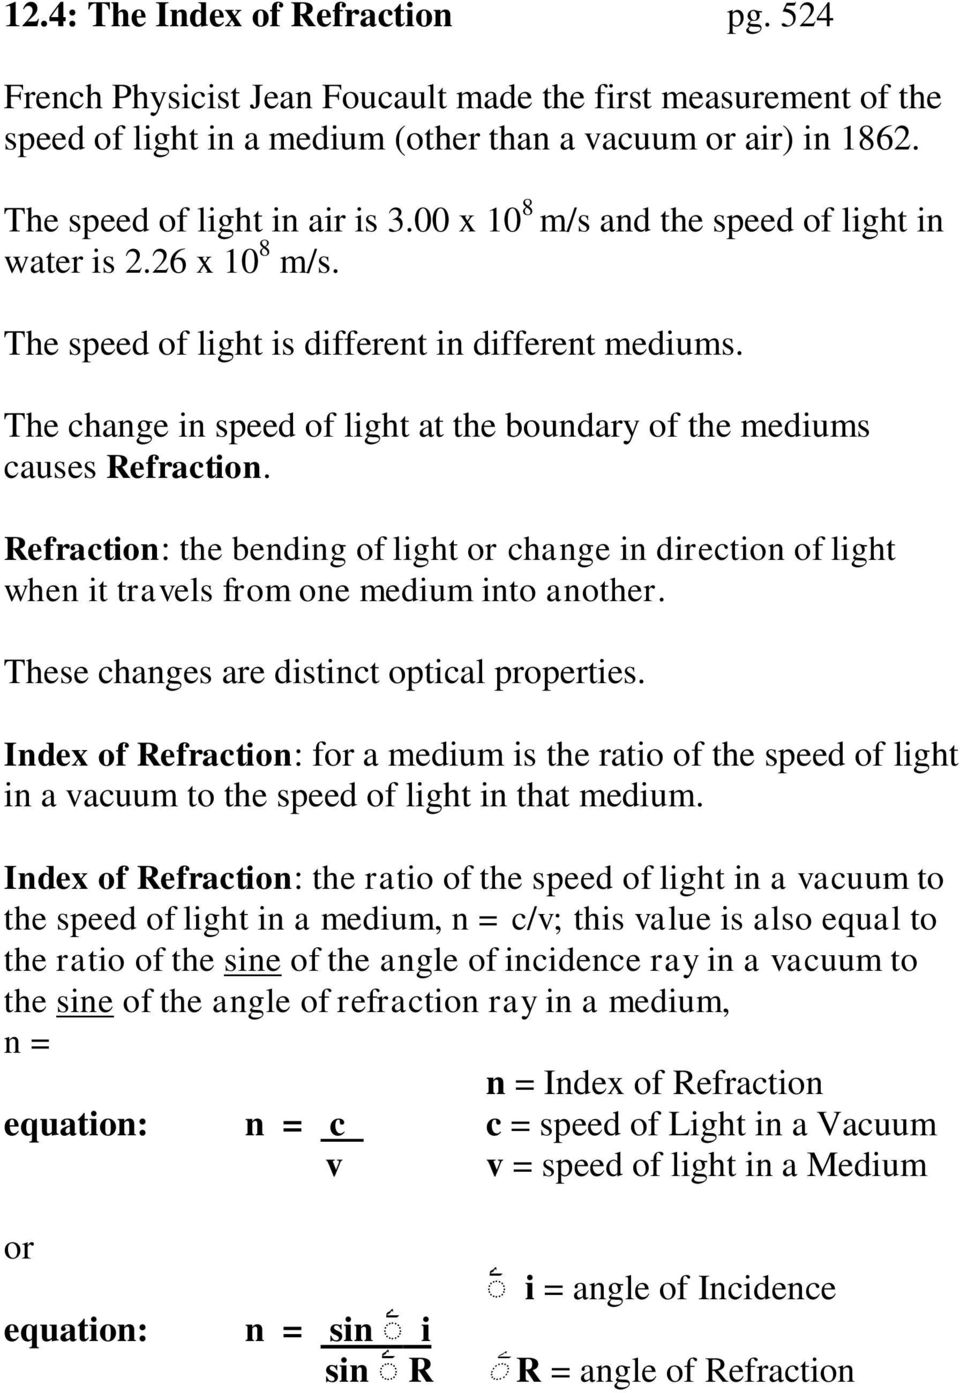 Refraction: the bending of light or change in direction of light when it travels from one medium into another. These changes are distinct optical properties.